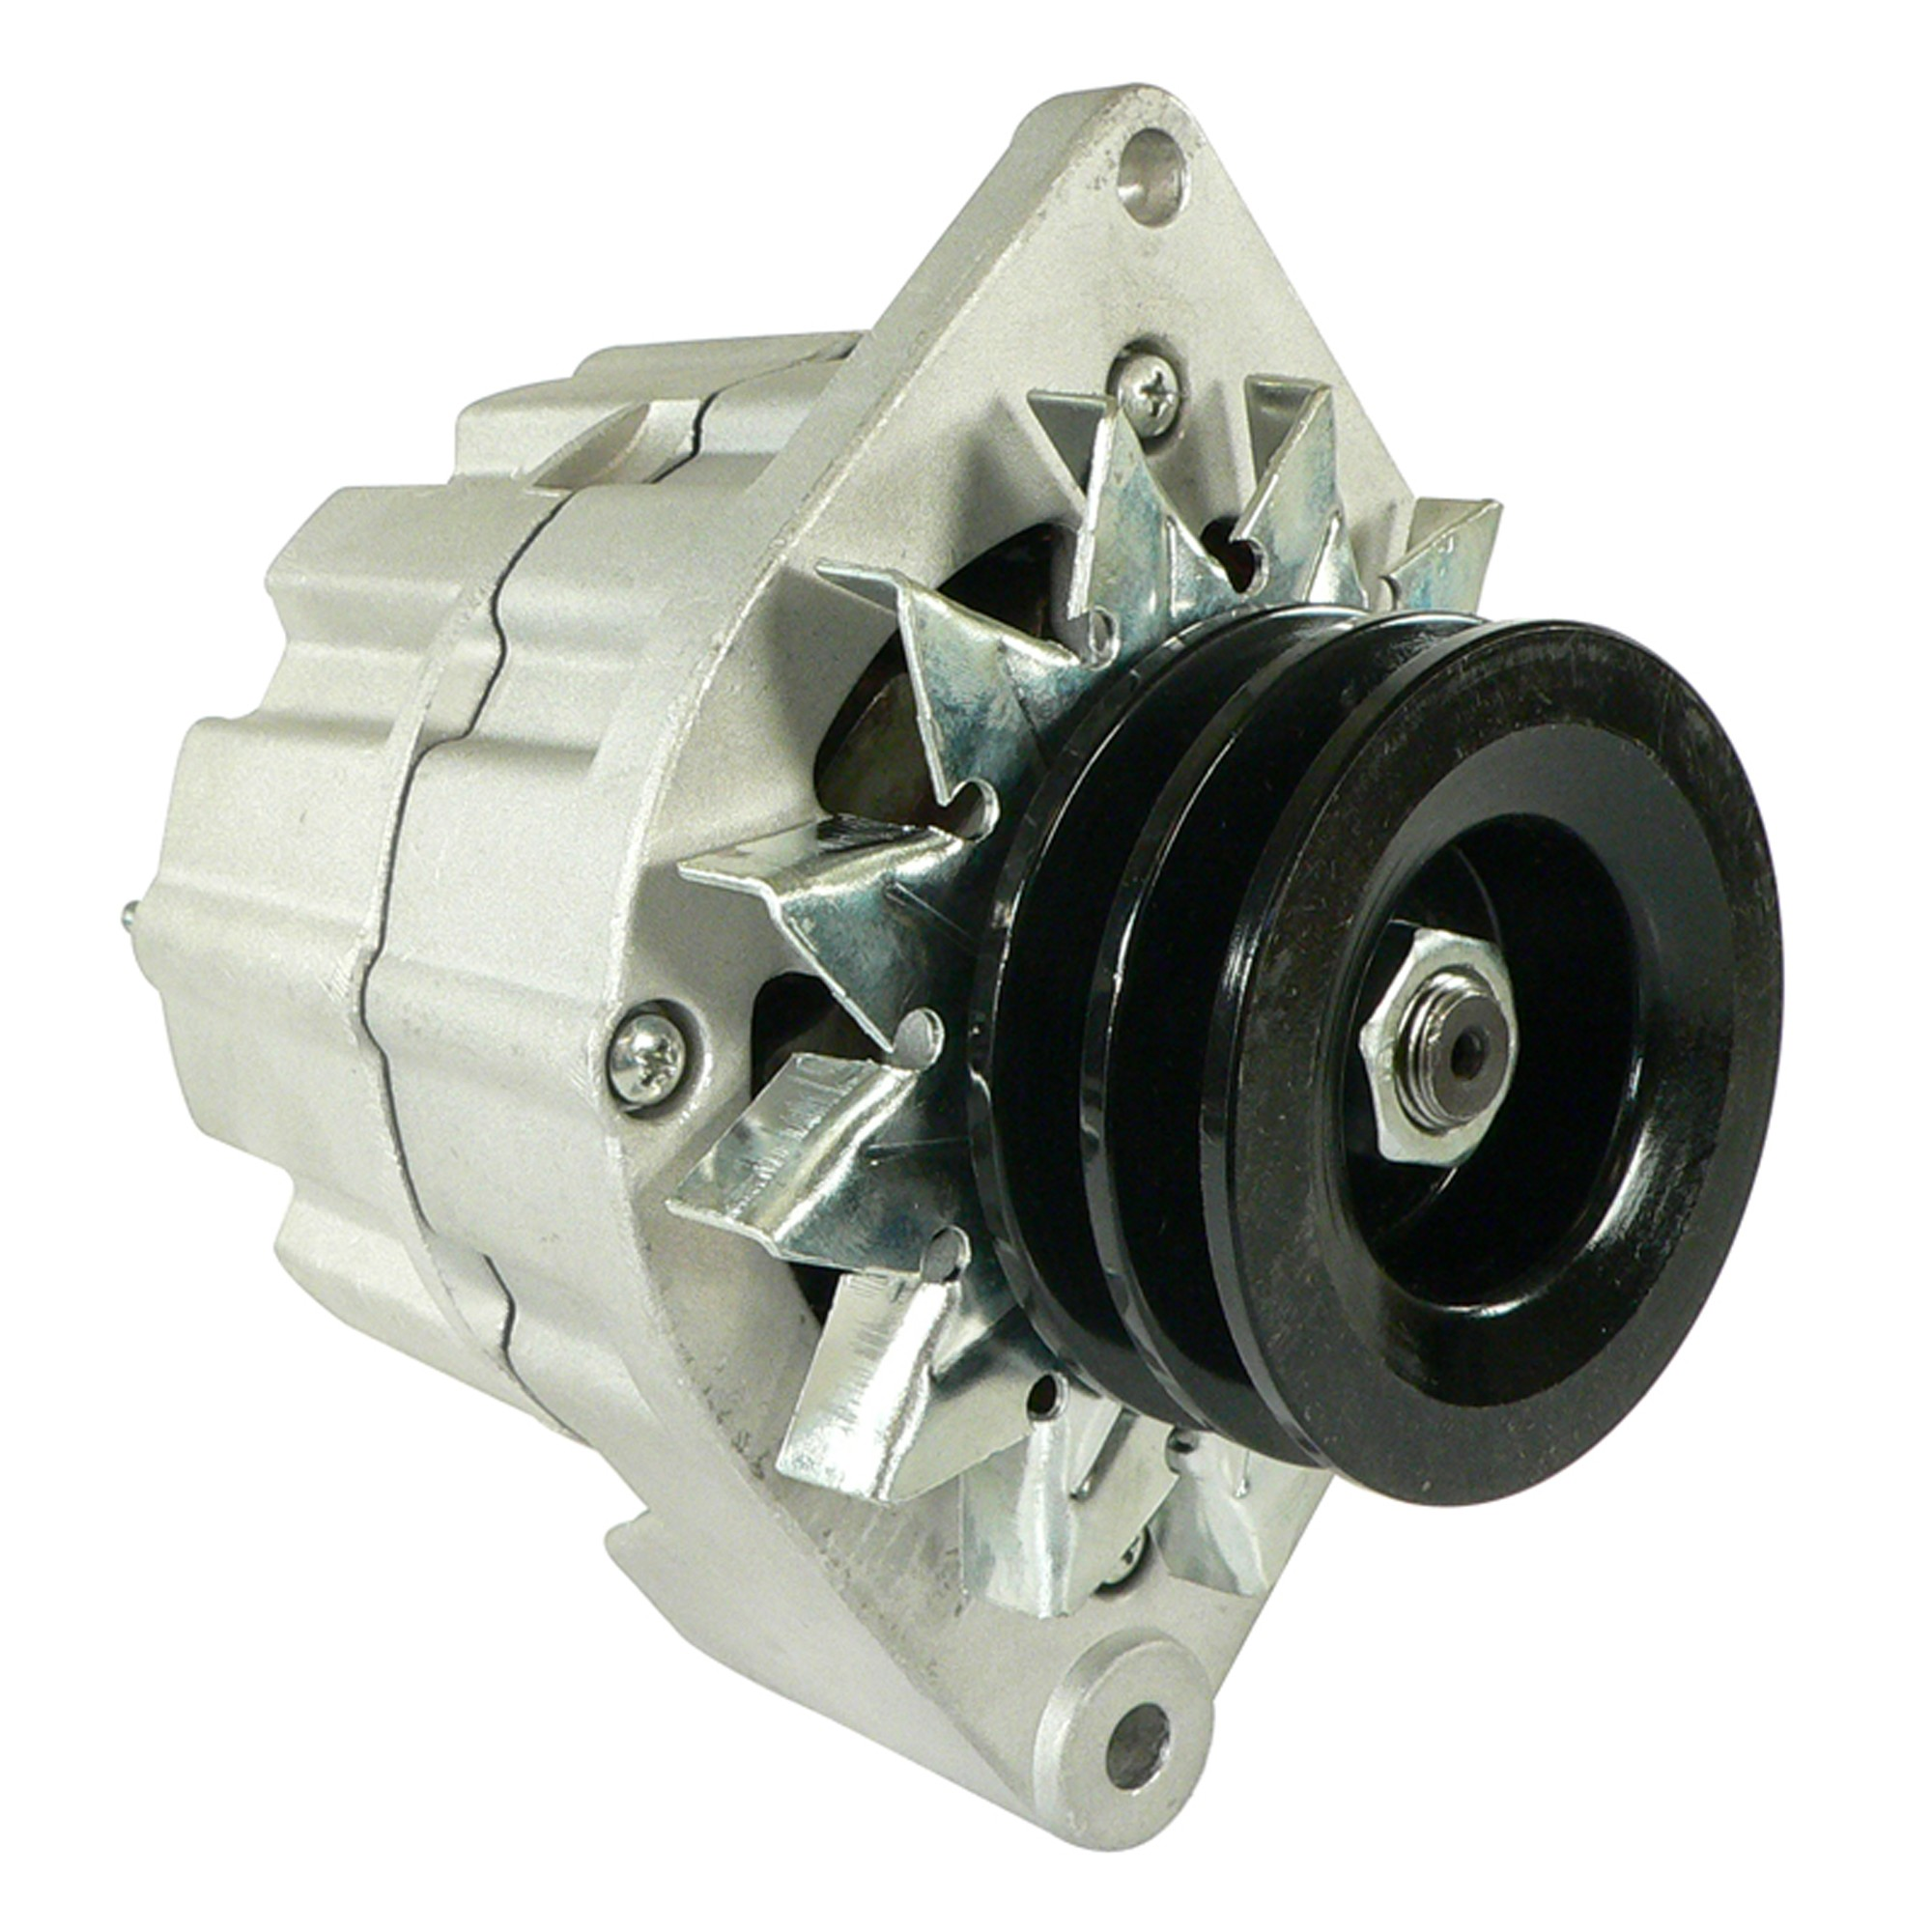 ALTERNATOR FOR CATERPILLAR FORK LIFT TRUCK TH103 TH63 TOOL CARRIER IT14F TH63